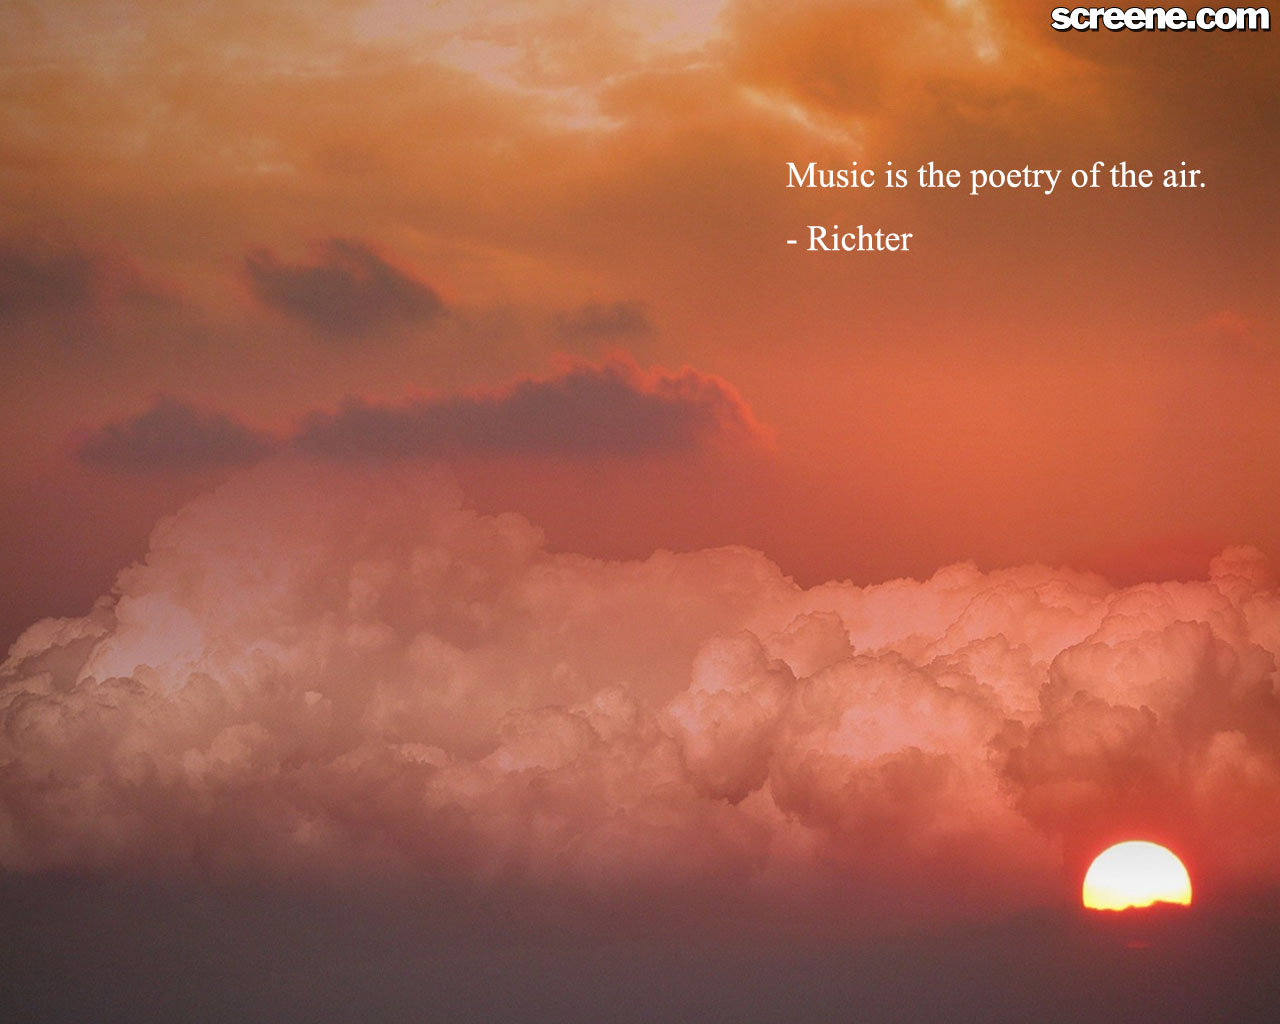 music quotes wallpapers - photo #28